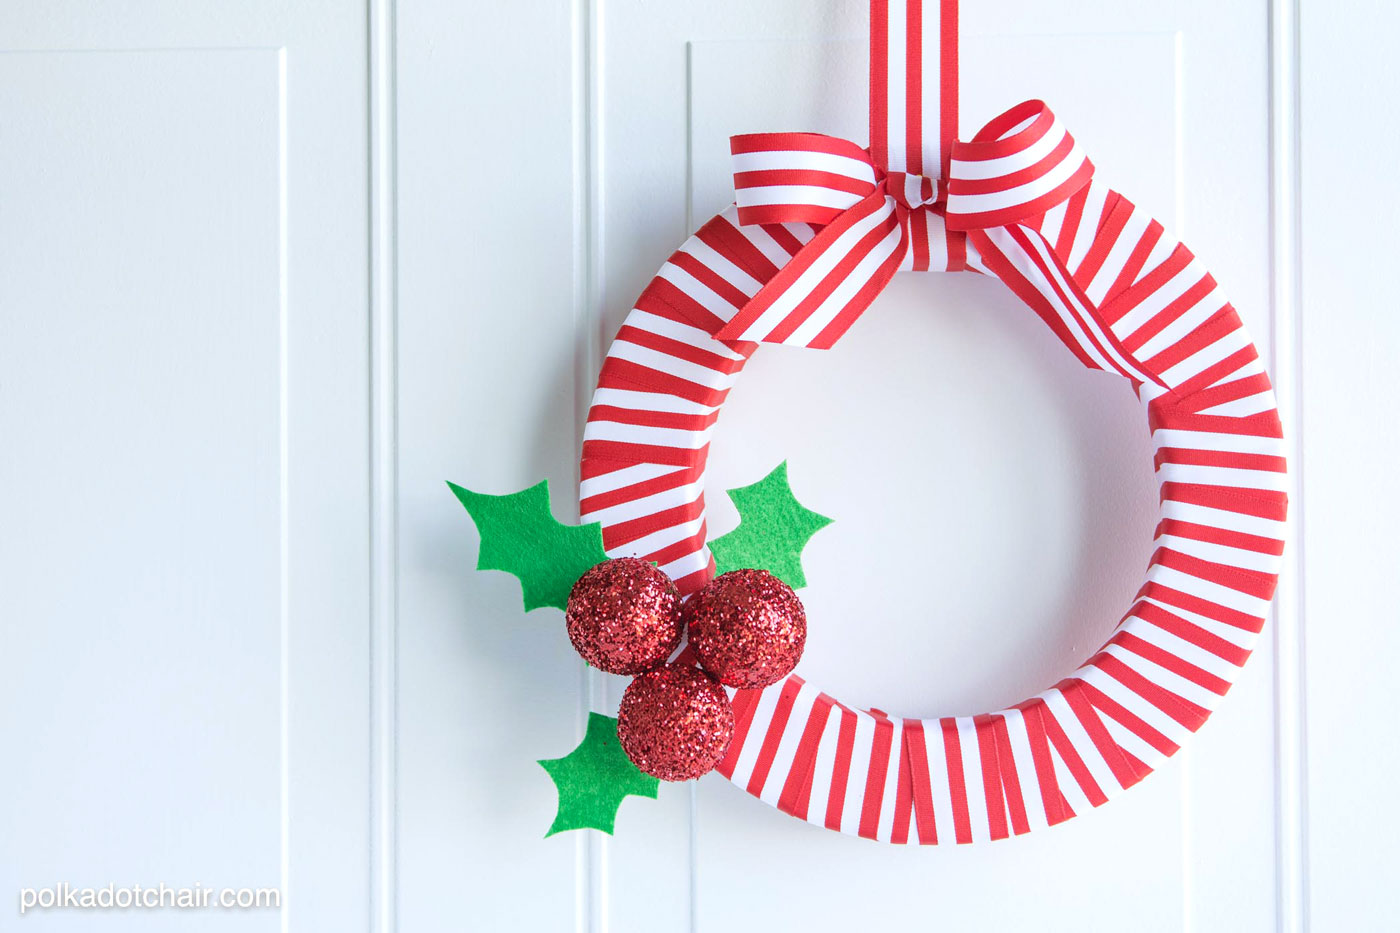 Resin Crafts Blog | DIY Wreath | DIY Decor | DIY Christmas | Christmas Decor | Christmas Wreaths | Easy Decor |